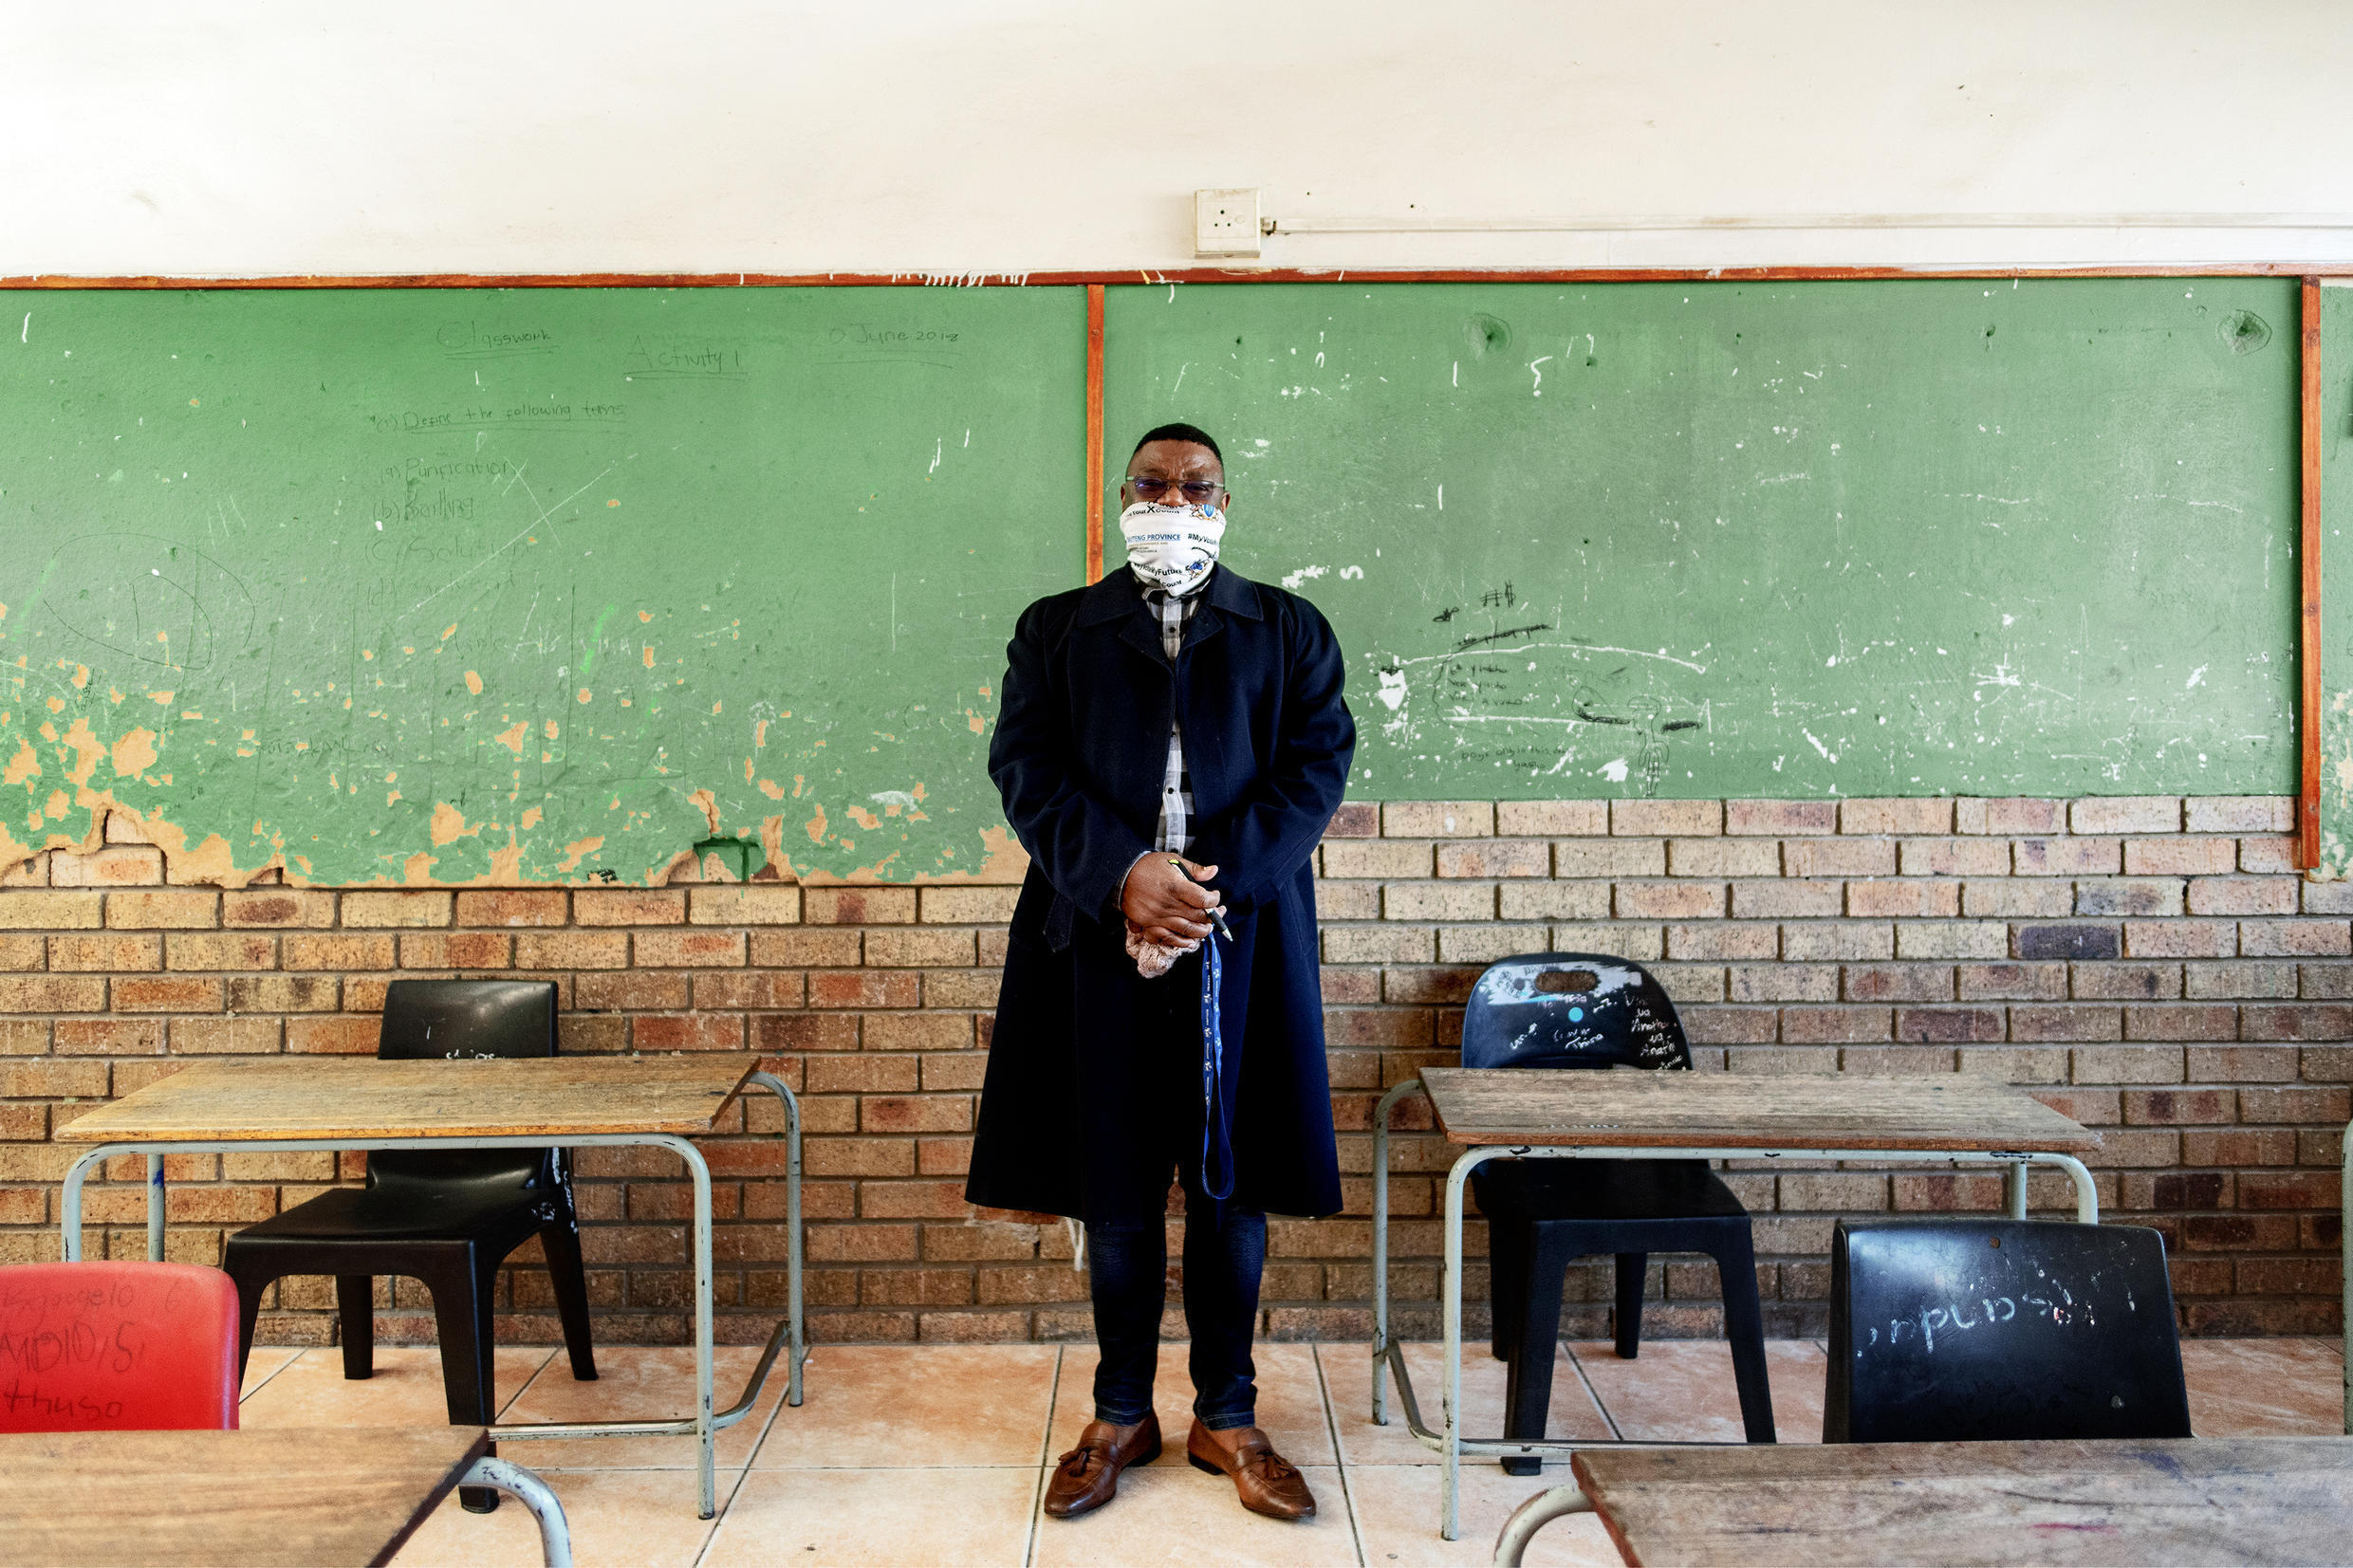 Mr. Gwala, headmaster of the Ithute Higher Primary School, poses for a portrait in an empty classroom in Alexandra, Johannesburg, on June 1, 2020.